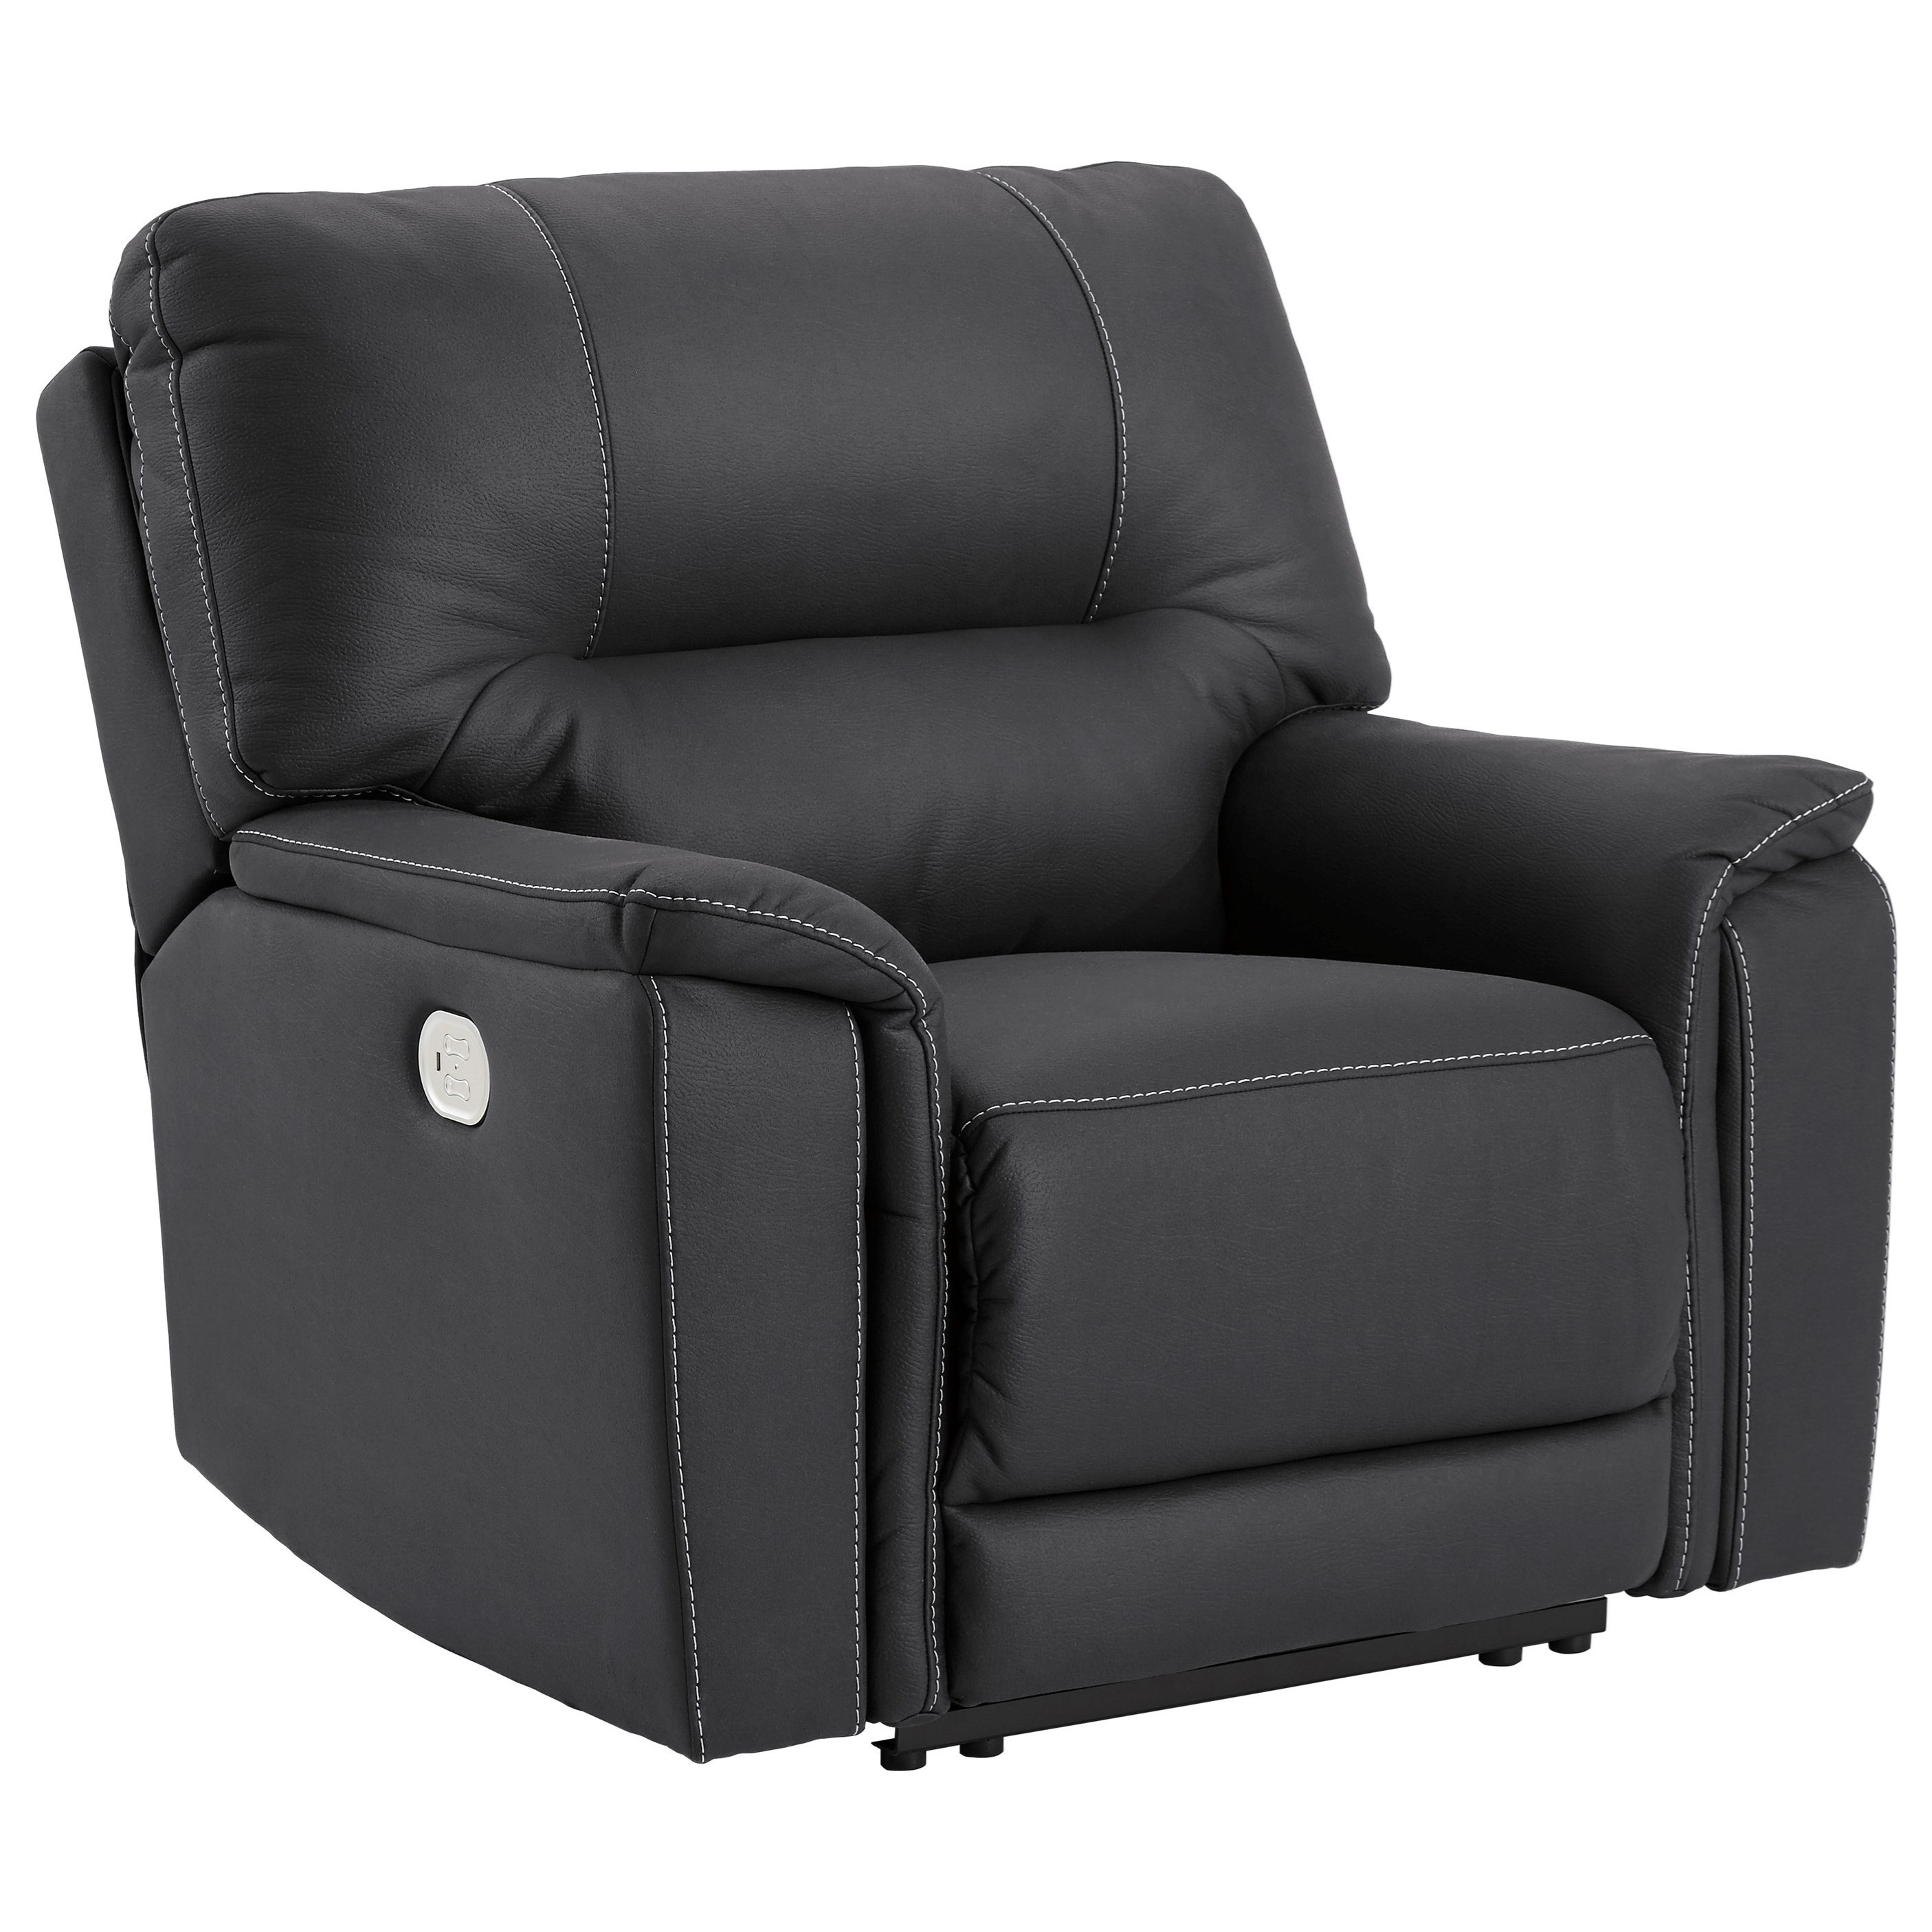 Henefer Power Recliner with Adjustable Headrest by Ashley (Signature Design) at Johnny Janosik